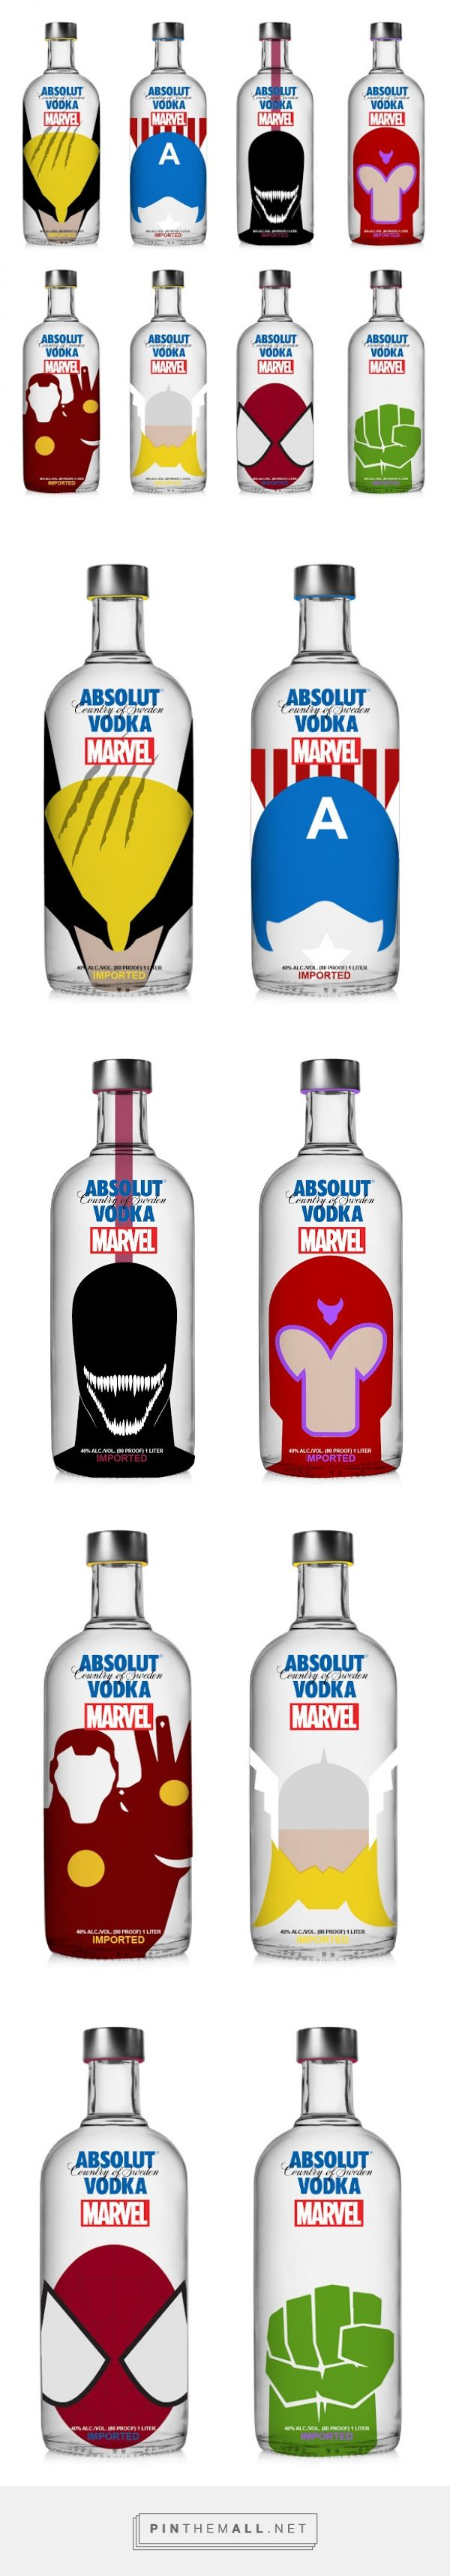 marketing of absolut vodka Explore valentin kopp's board absolut on pinterest | see more ideas about absolut vodka, advertising and ads.